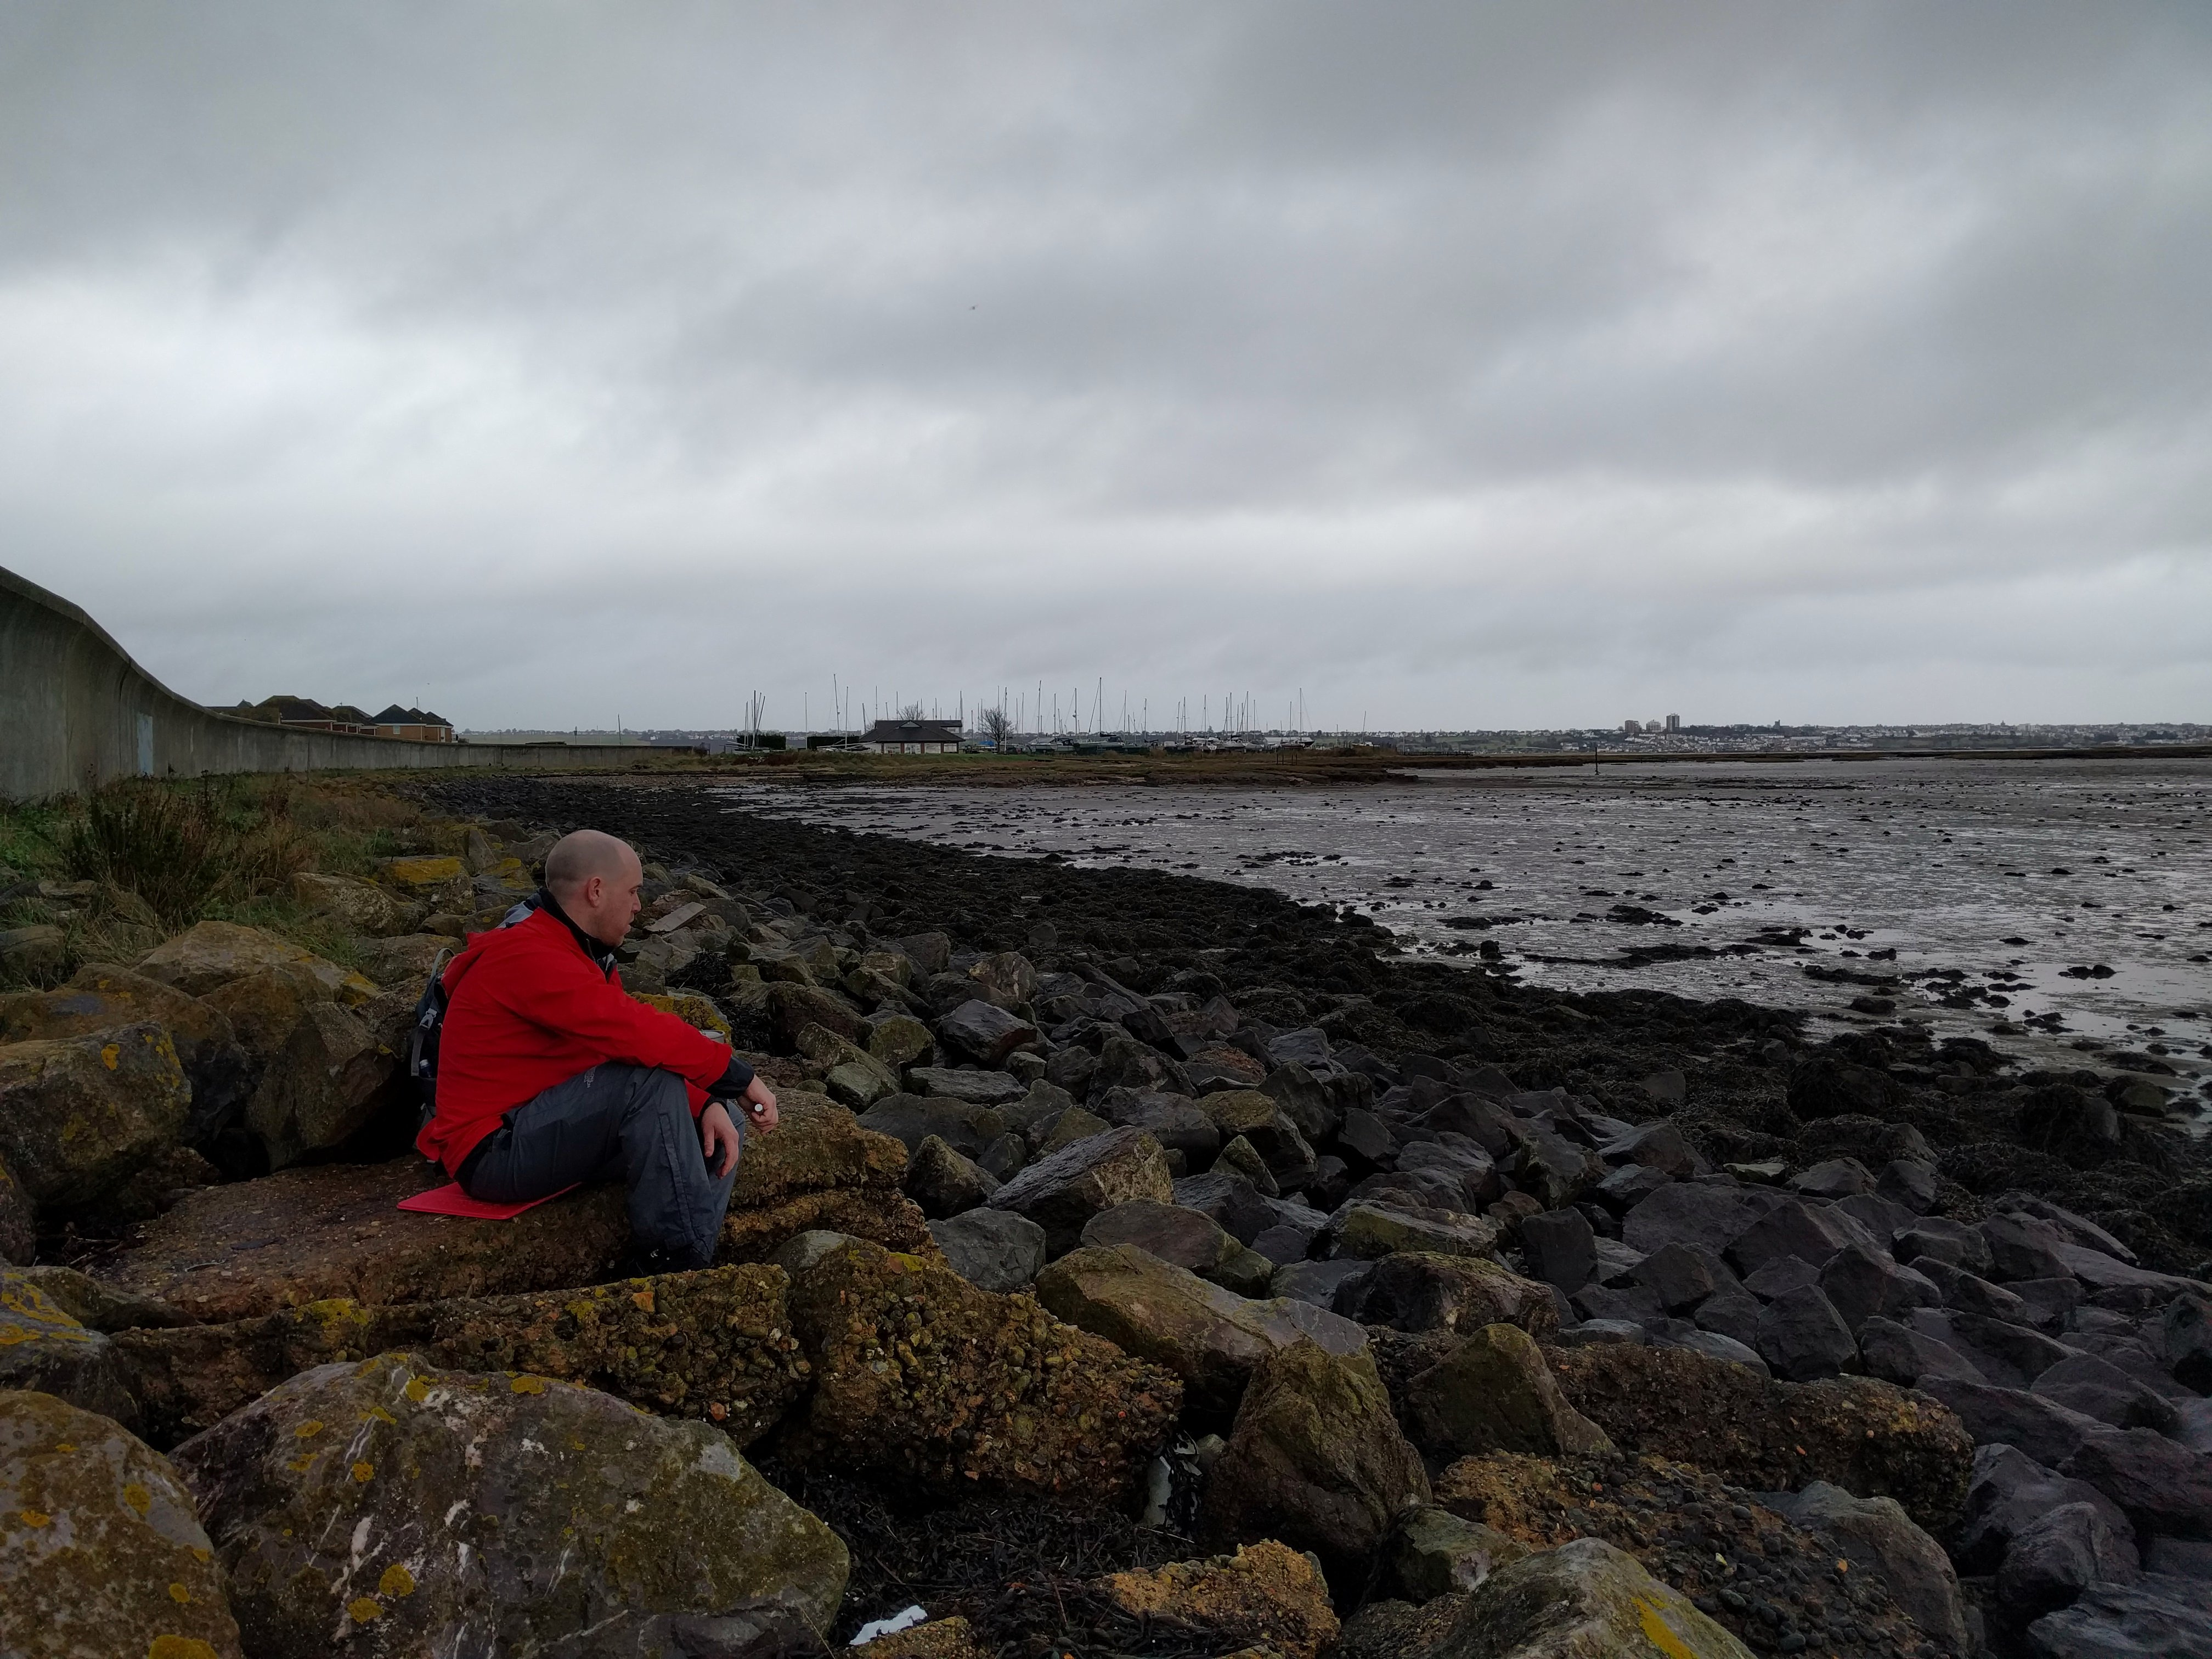 Lunch stop with @colinastbury by the sea wall #sh